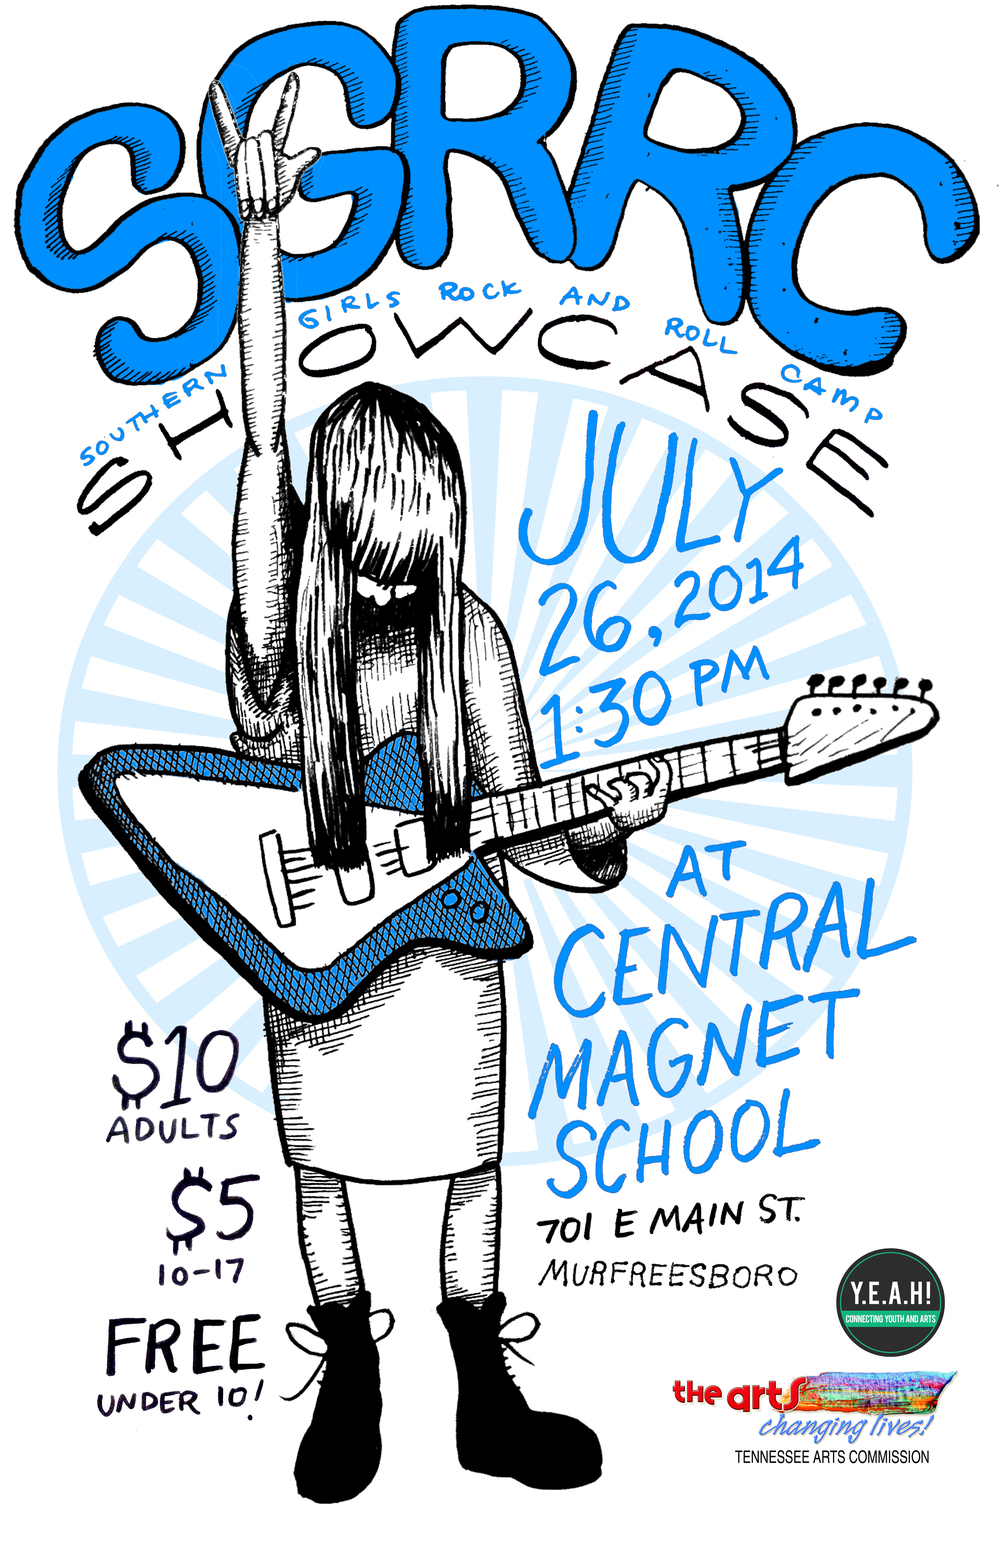 Southern Girls Rock n Roll Camp Showcase